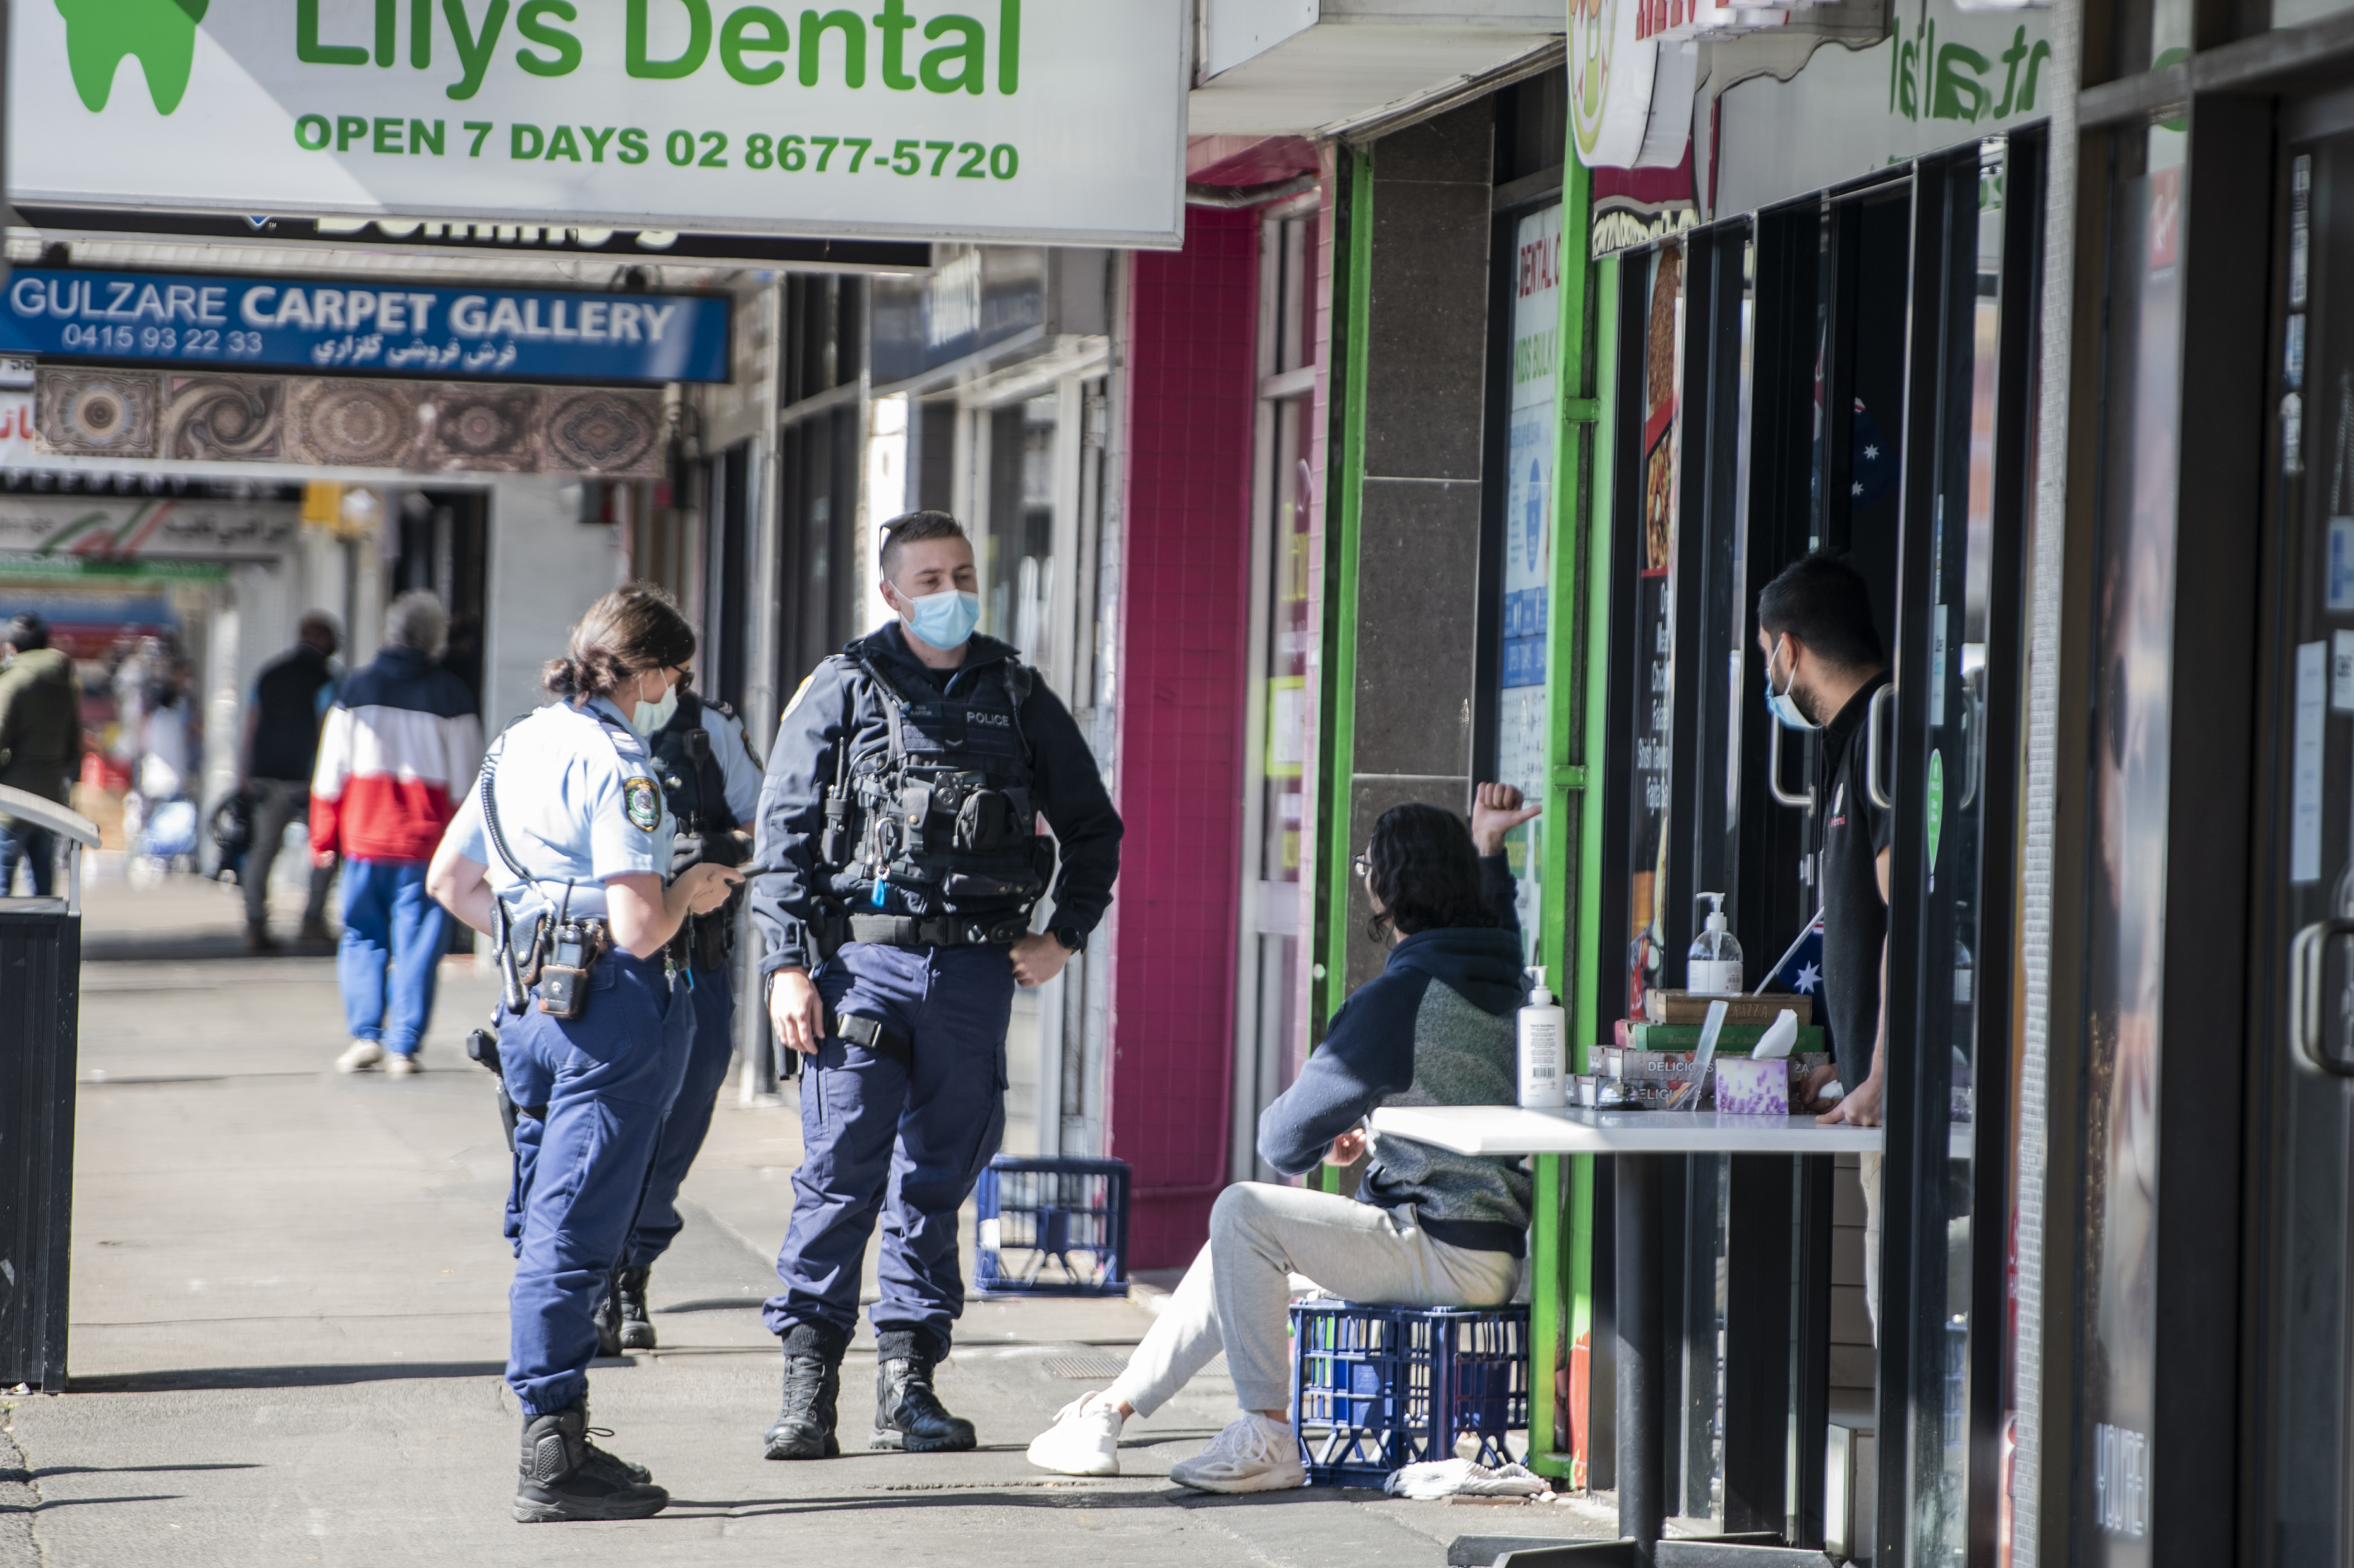 Police speaking to a man not wearing a mask, Merrylands Road, Merrylands on August 18.